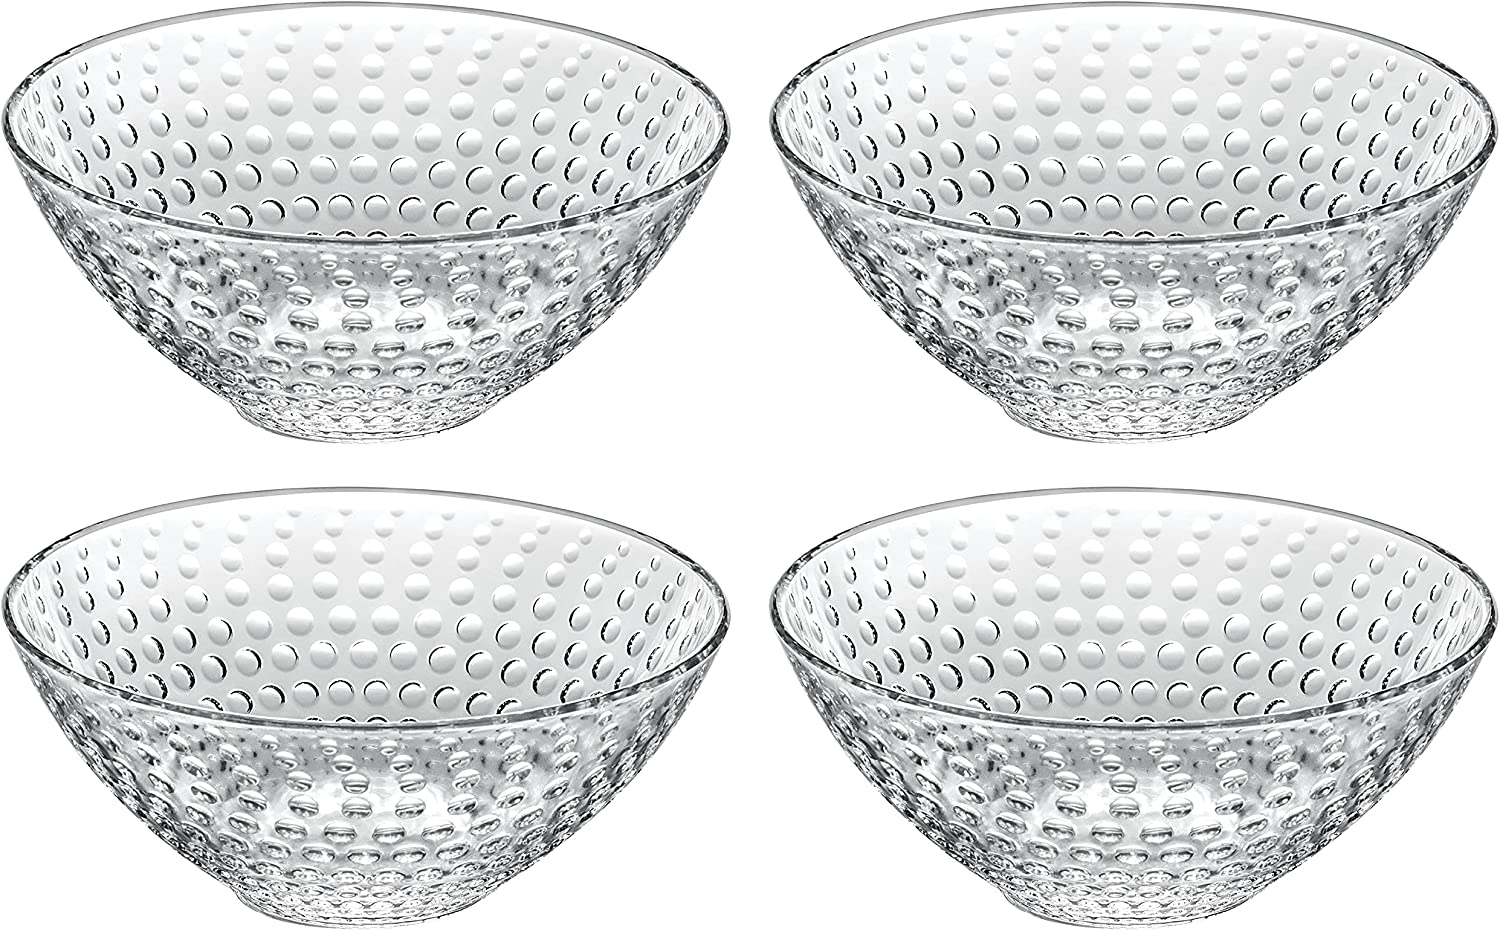 Ranking TOP5 Glass Bowl - For Dessert Salad Chocol Fruit Ranking integrated 1st place Pasta Nuts